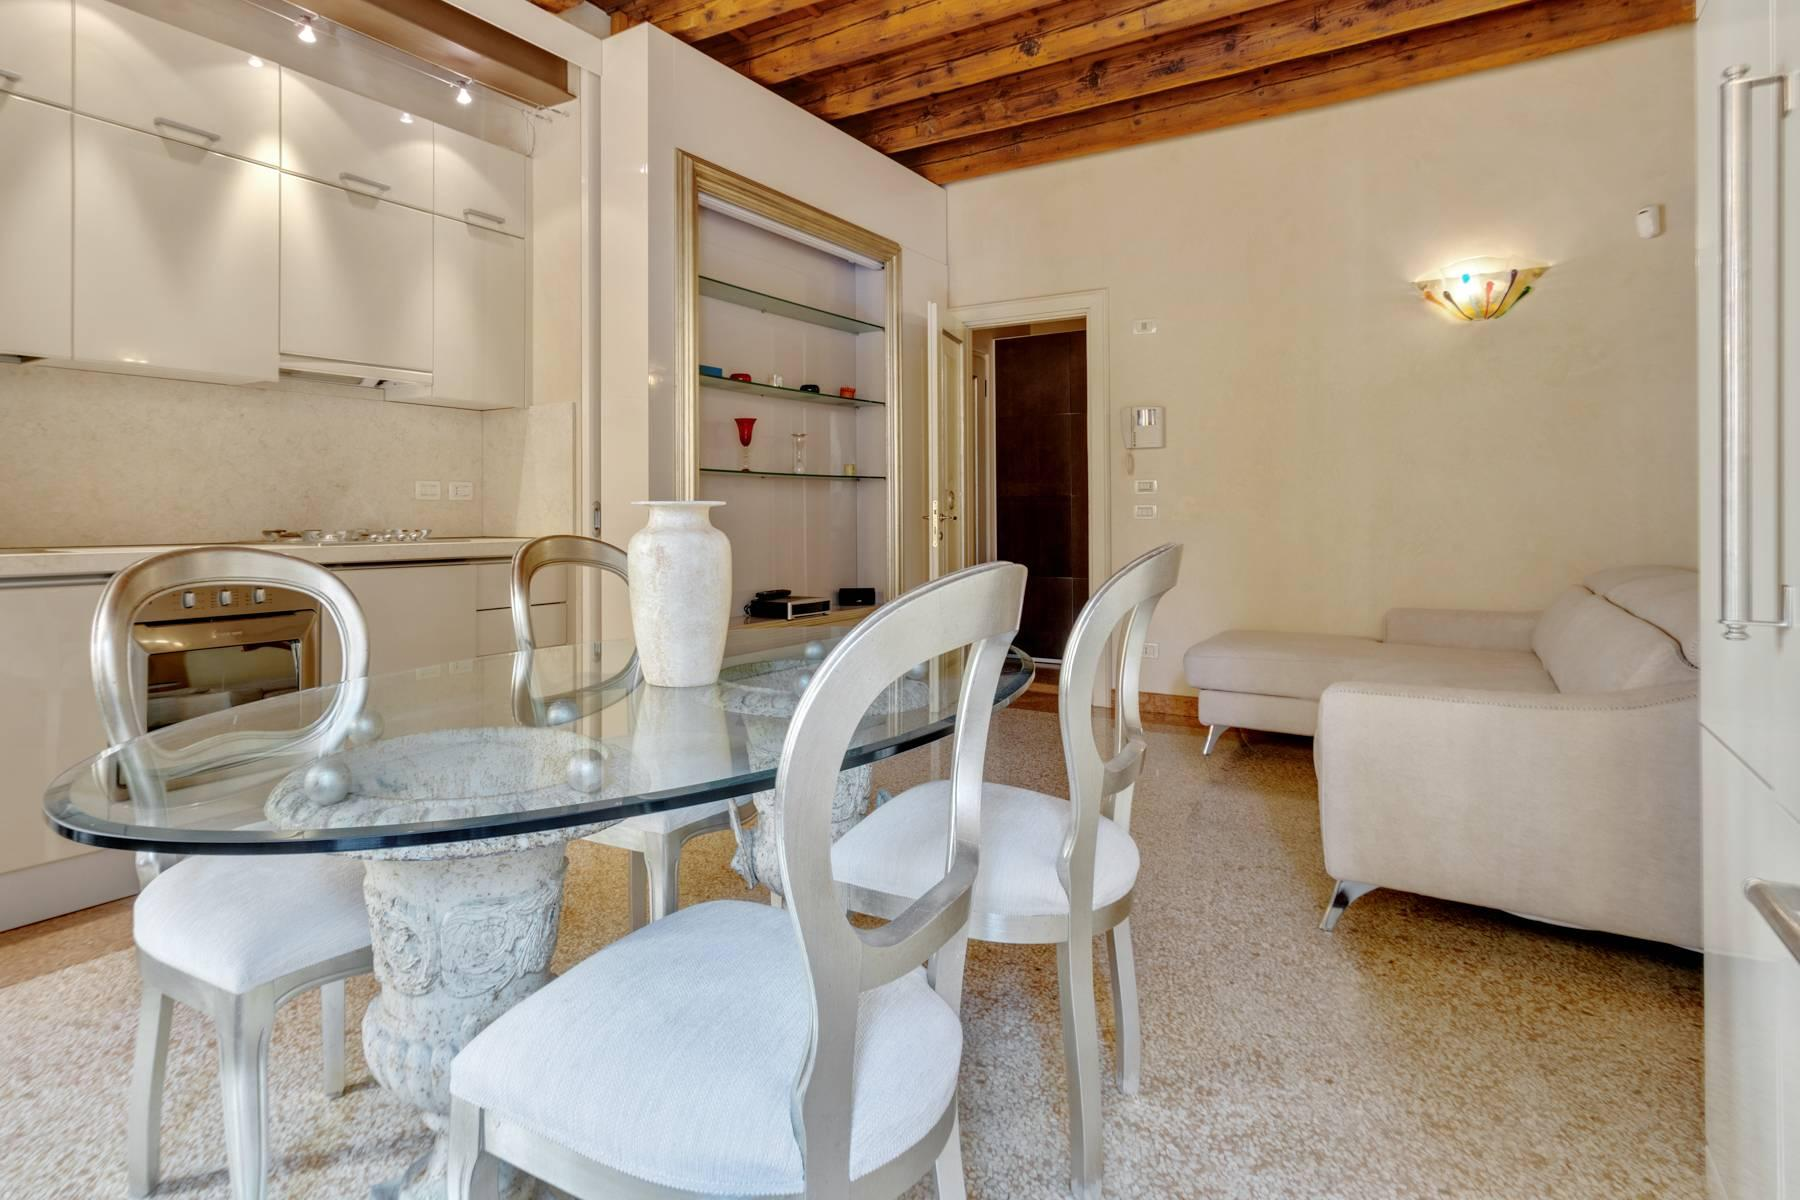 Exquisite apartment just few steps away from Piazza delle Erbe - 3